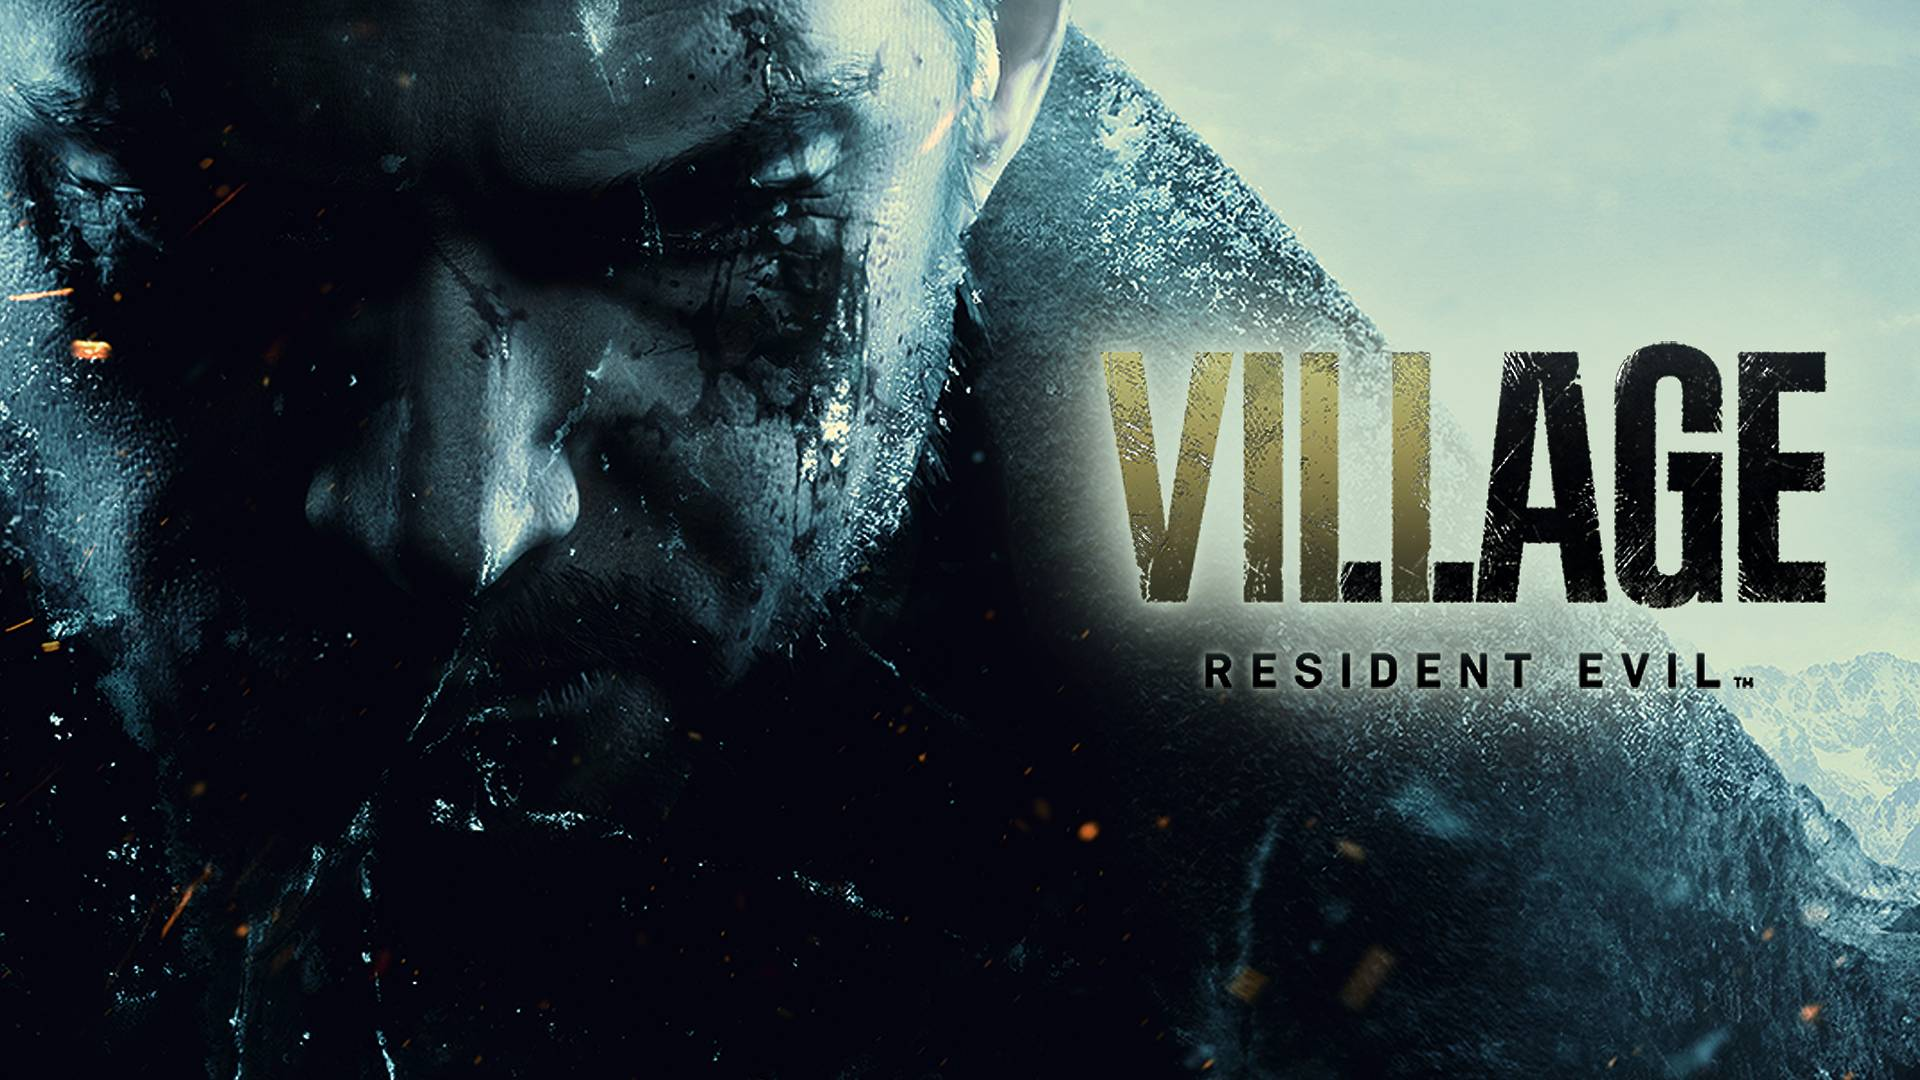 How to play the Resident Evil Village demo - How to download the game demo